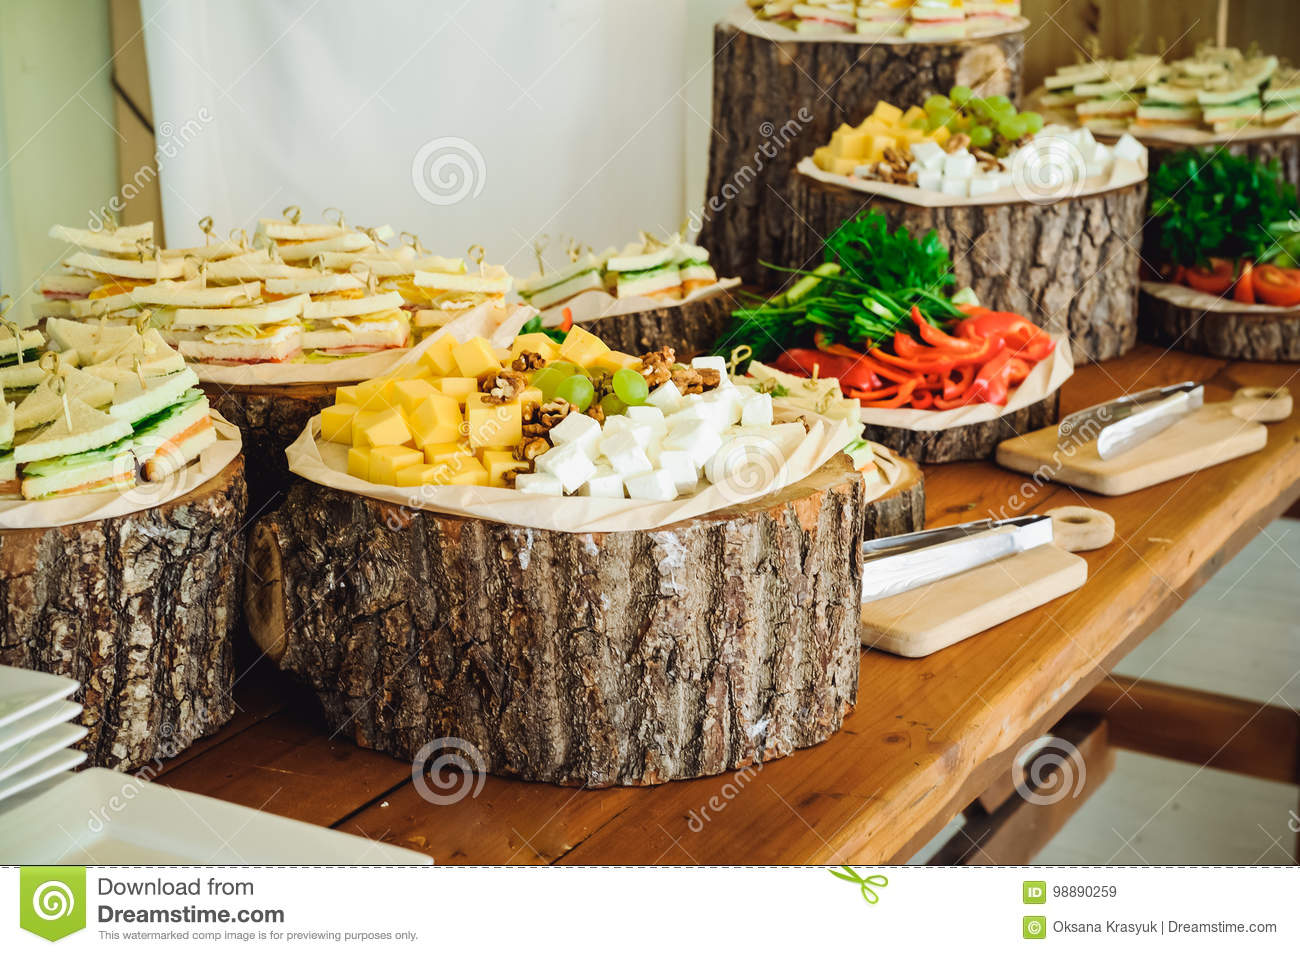 Outside Catering Buffet Table With A Delicious Food For Guests Of